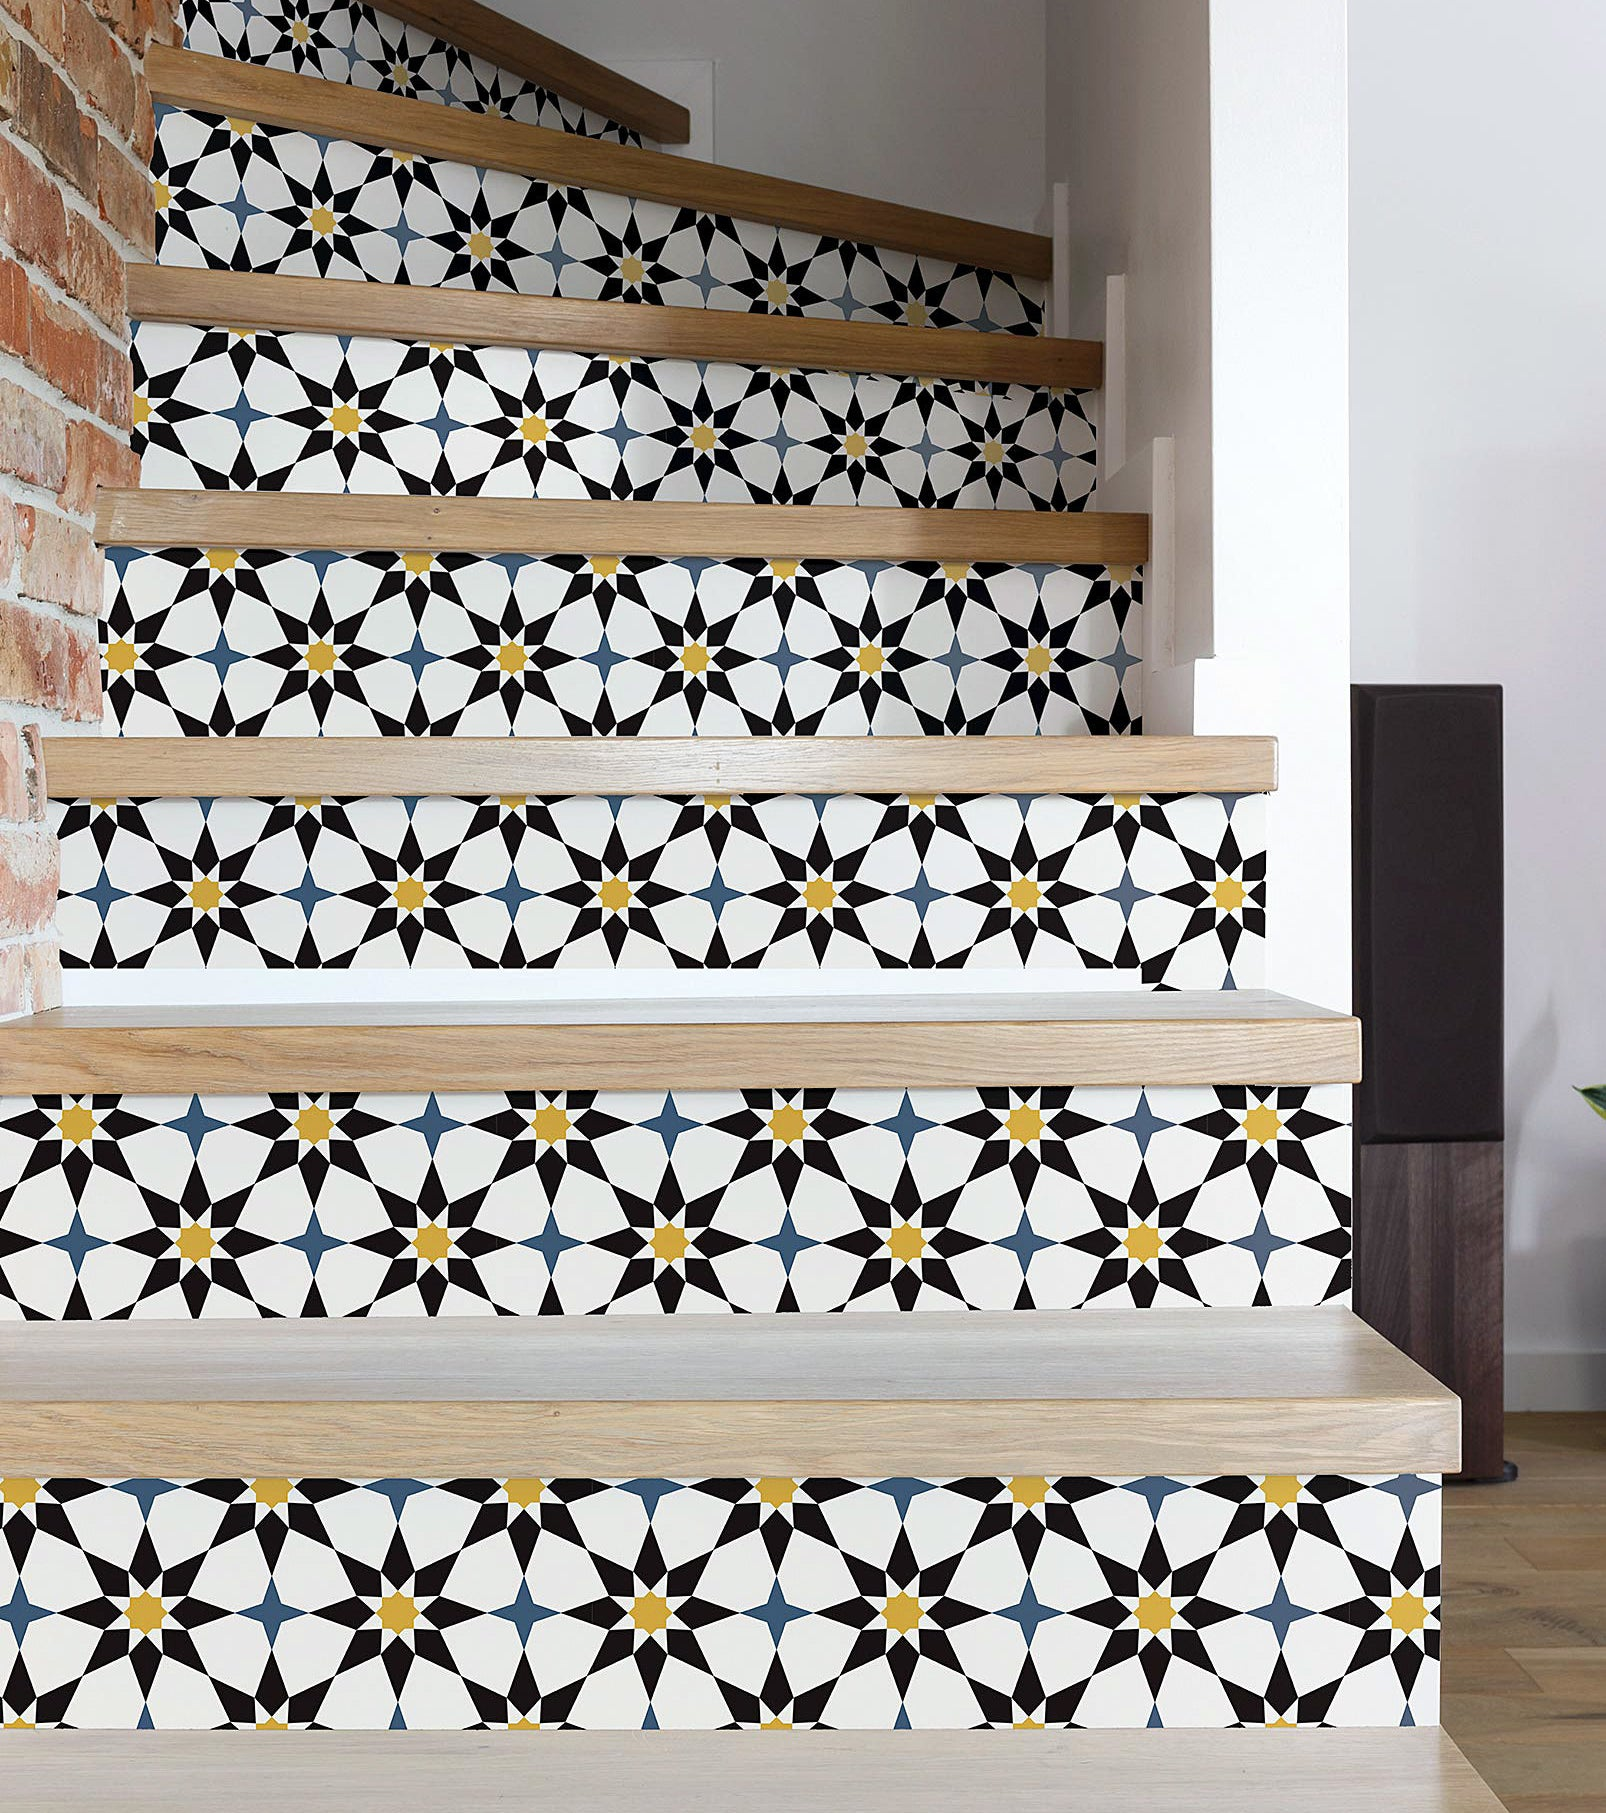 The self-adhesive wallpaper lining a staircase